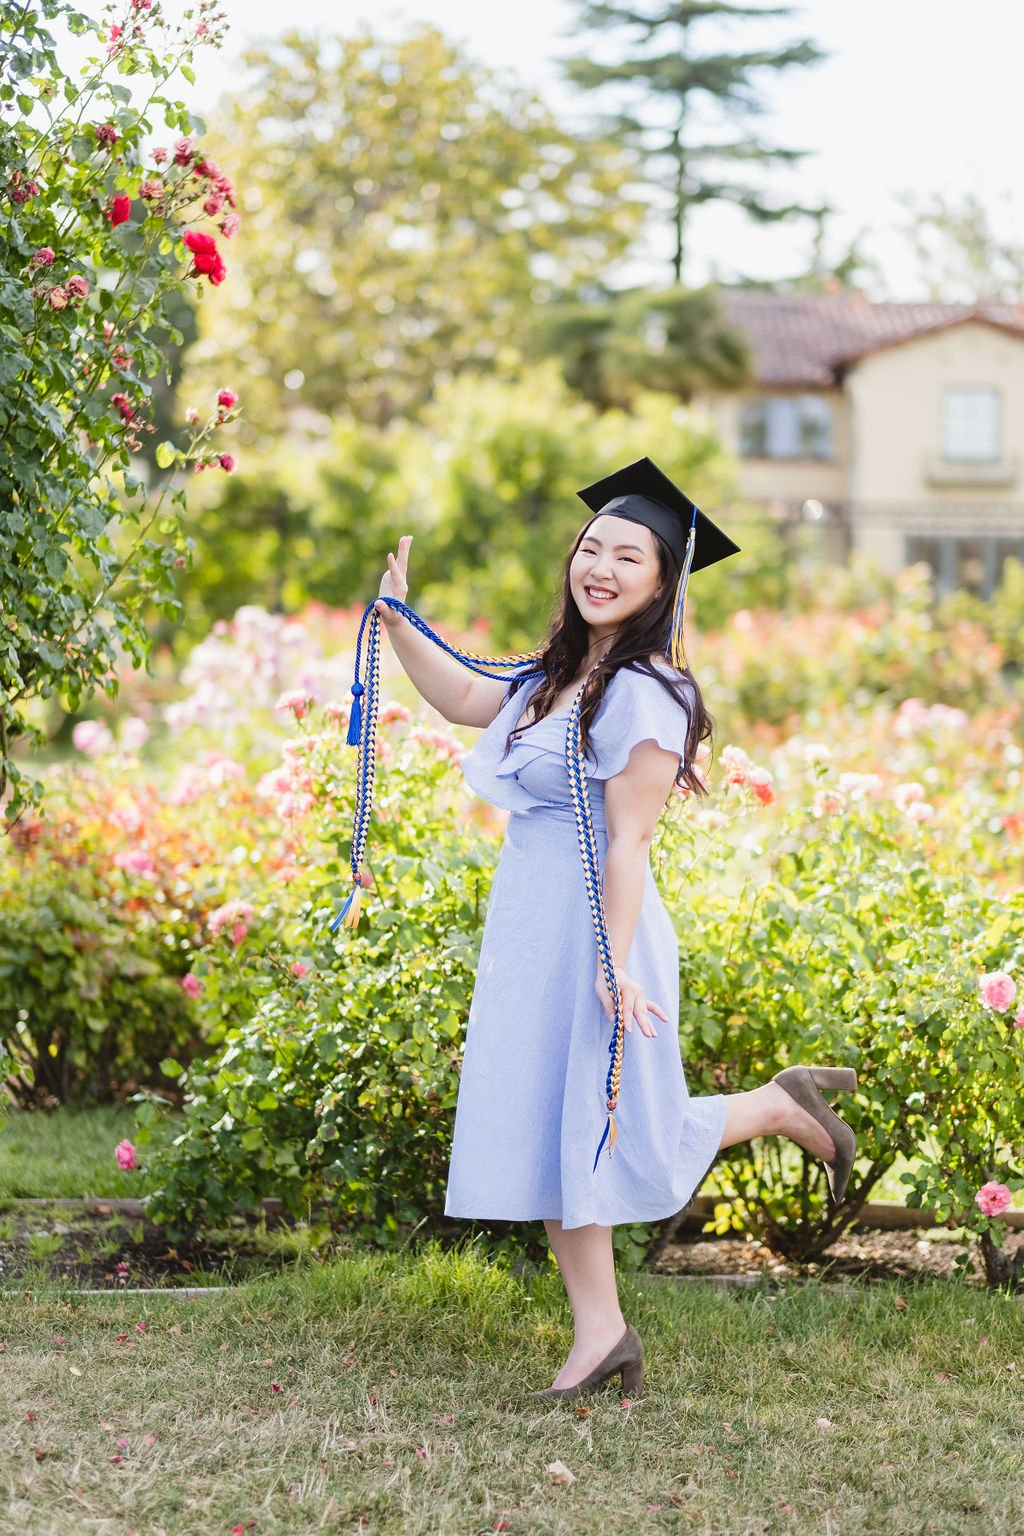 Graduate Holding Honor Society Ropes and Smiling